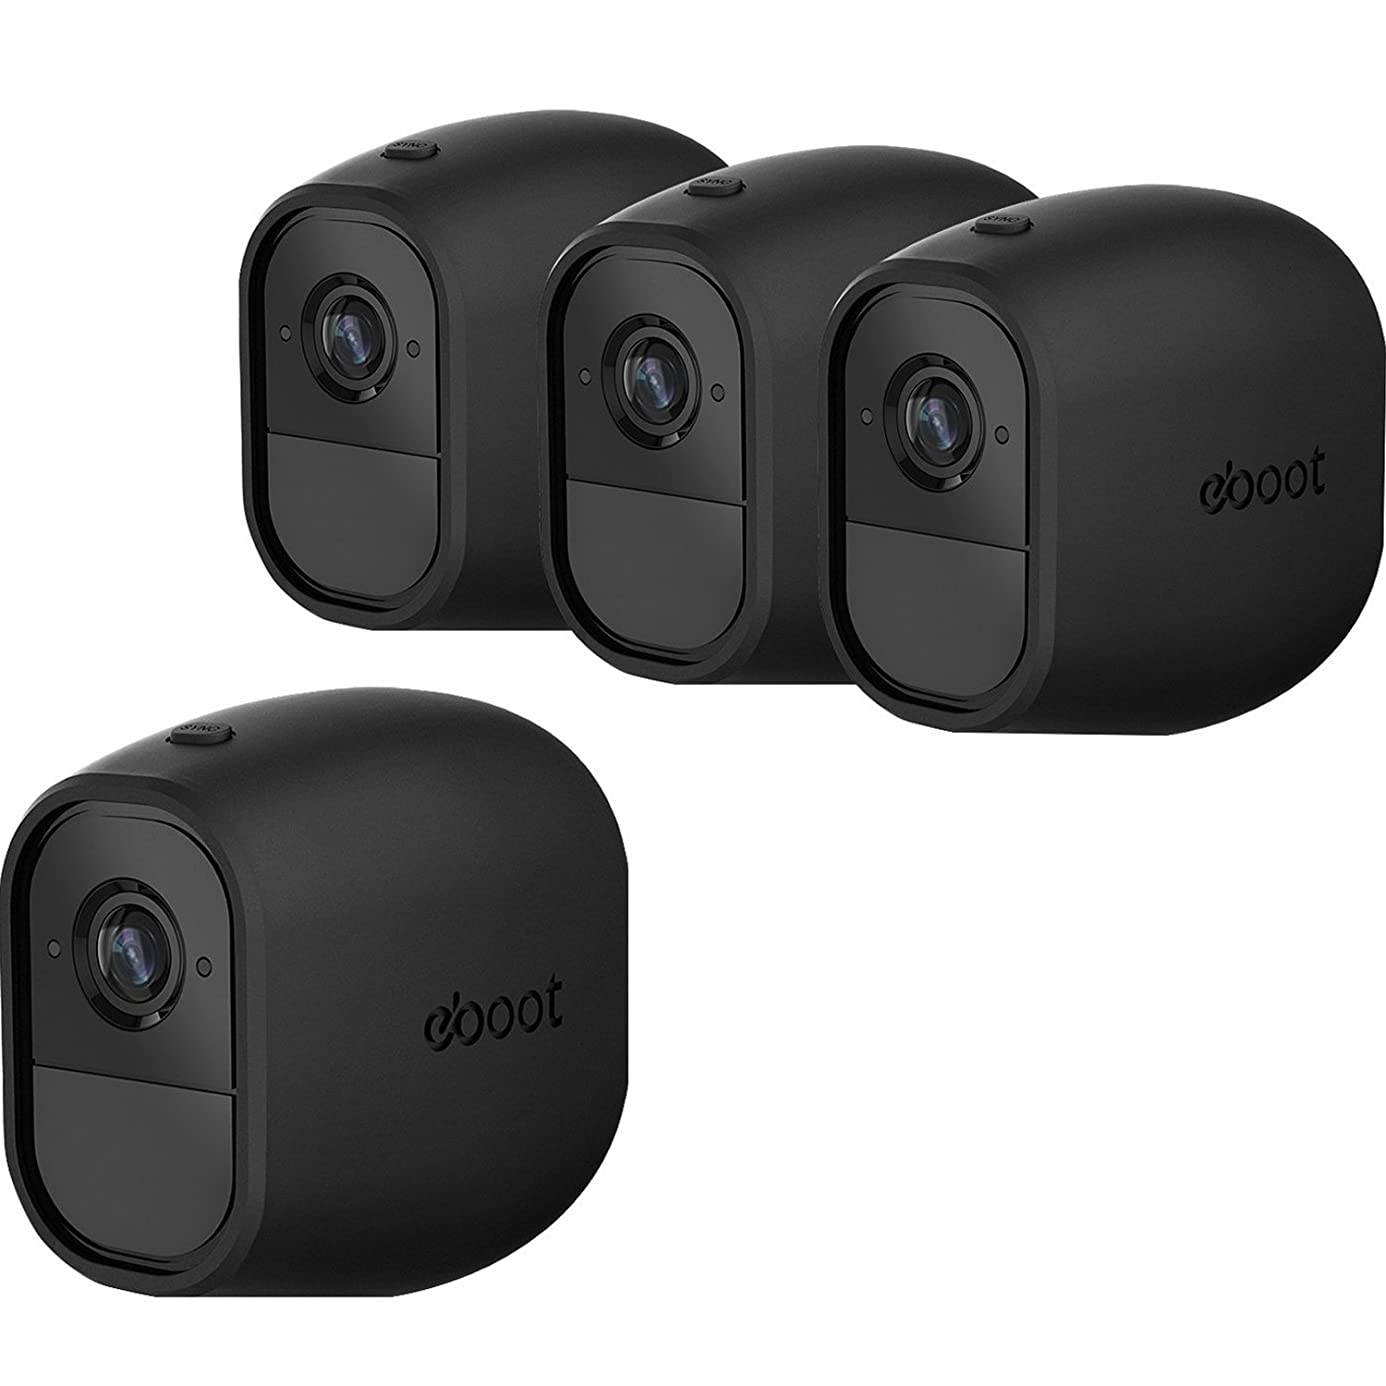 Silicone Skins Cover Protective Skin for Arlo Pro, Arlo Pro 2 Smart Security Wire-Free Cameras (4 Pack, Black)